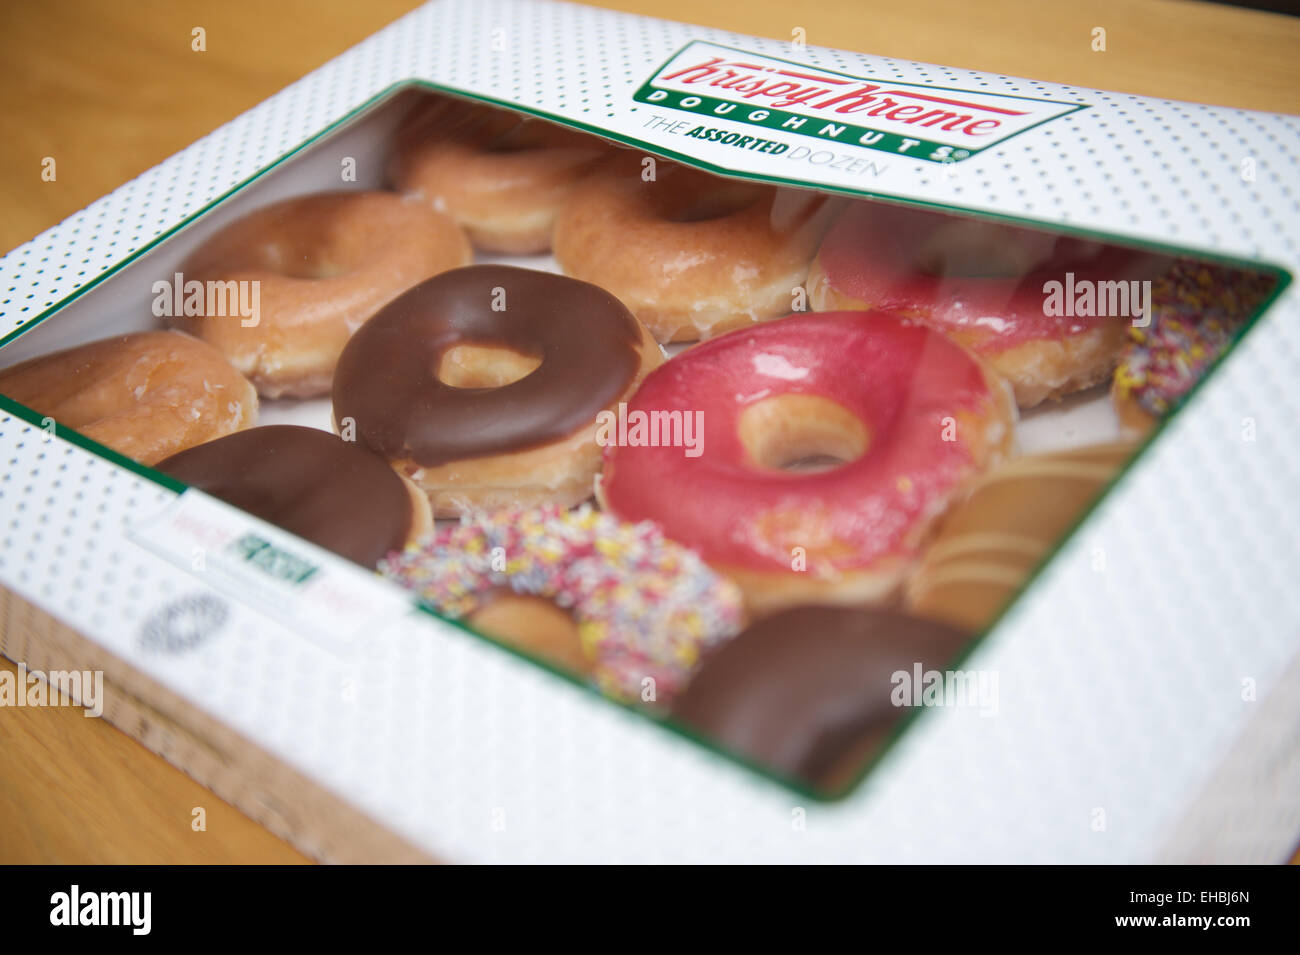 Box Of Krispy Donuts Wiring Diagrams Fun With Snap Circuits 4 Let There Be Light Funwithsnapcircuits Kreme Doughnuts Treats Desserts Stock Photo 79546397 Alamy Rh Com 12 Price Cost